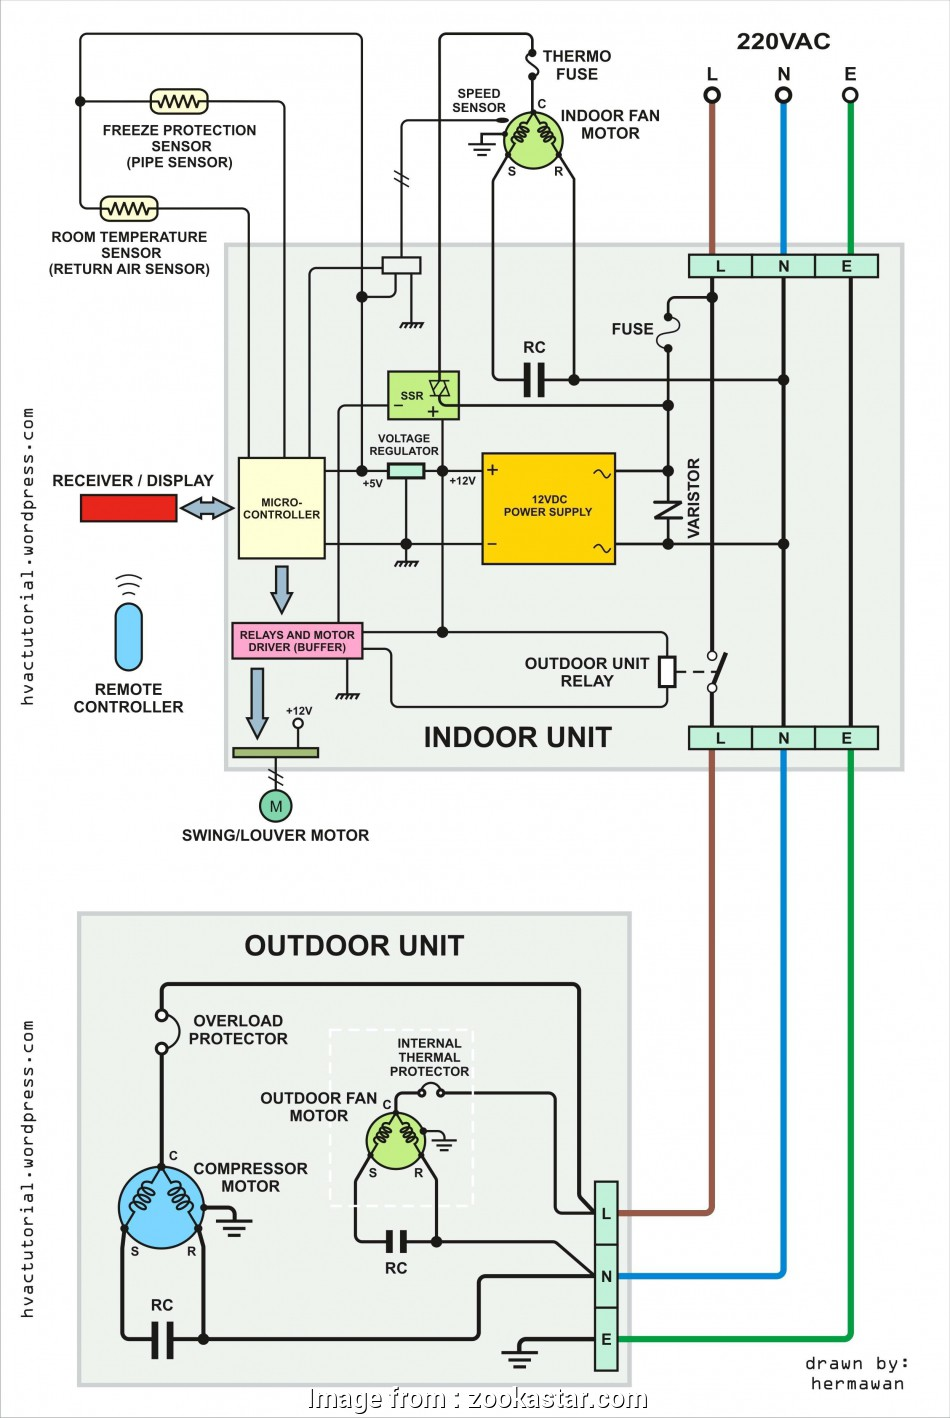 Basic Home Electrical Diagram - on